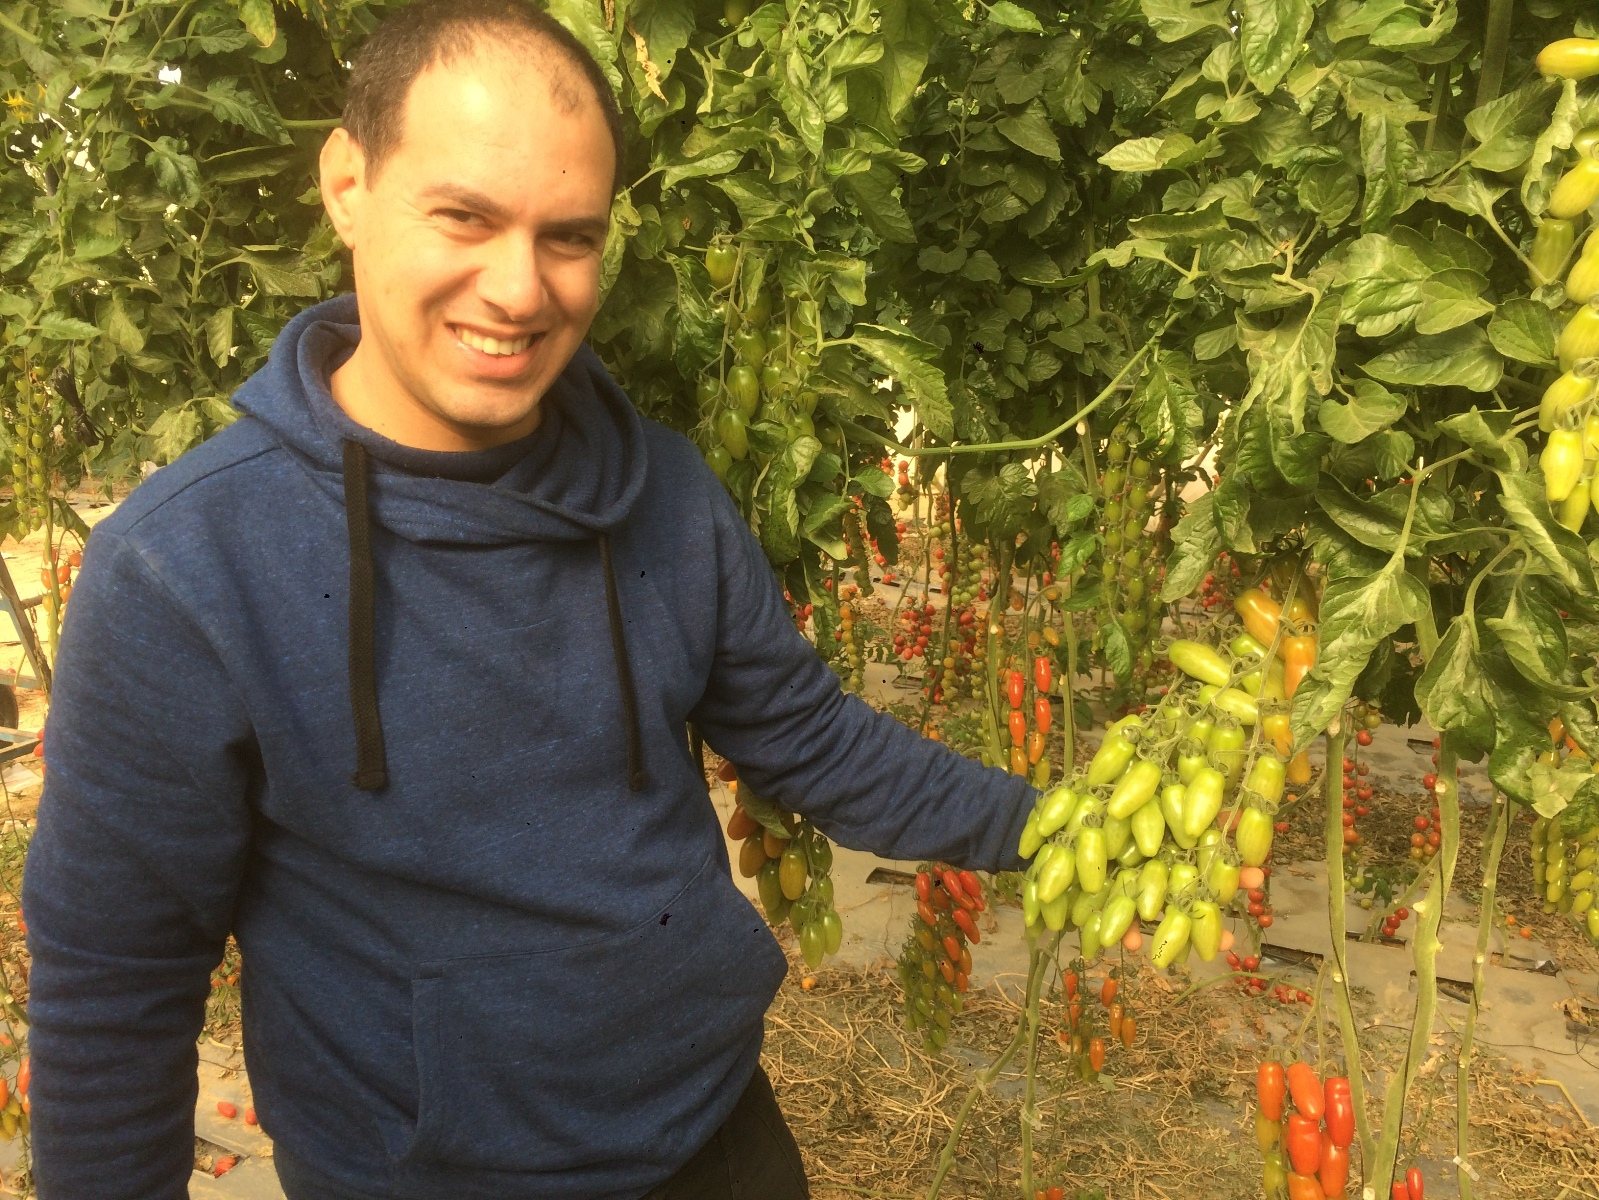 Hebrew University PhD student Itay Zemach holding a tomato cluster of an elongated cherry variety he bred that is rich in flavor, unique in color and shape and has high yield. Photo by Amit Koch